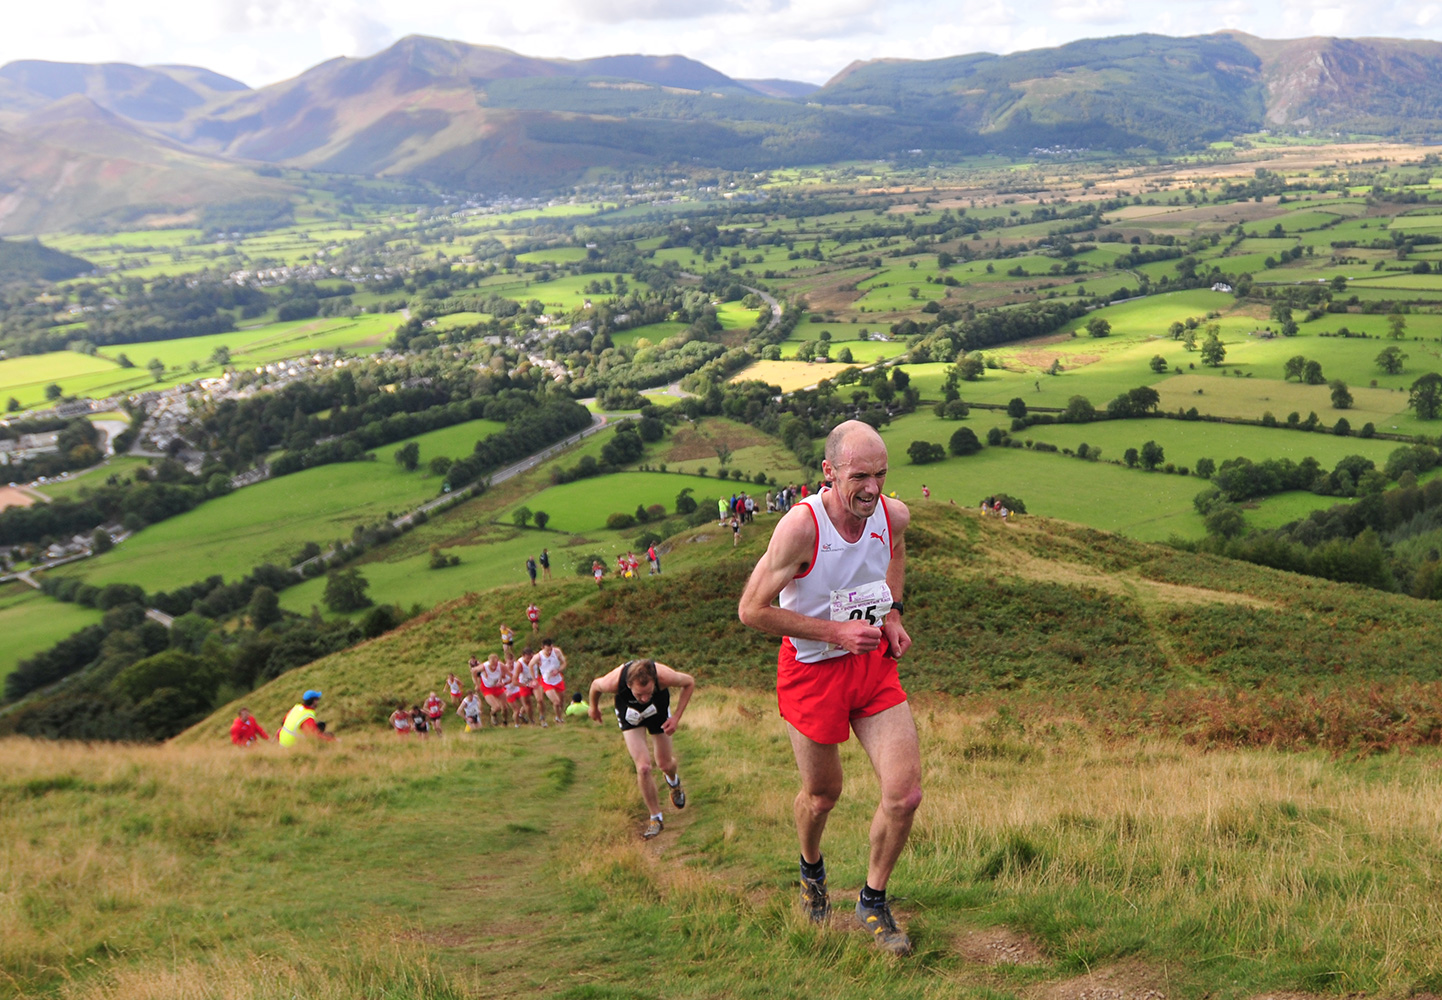 I shot this event for the I.A.U. in Keswick in September 2009. This is John Brown of England leading the field chasing Wilson Chemweno in the Mens' Fell Race.